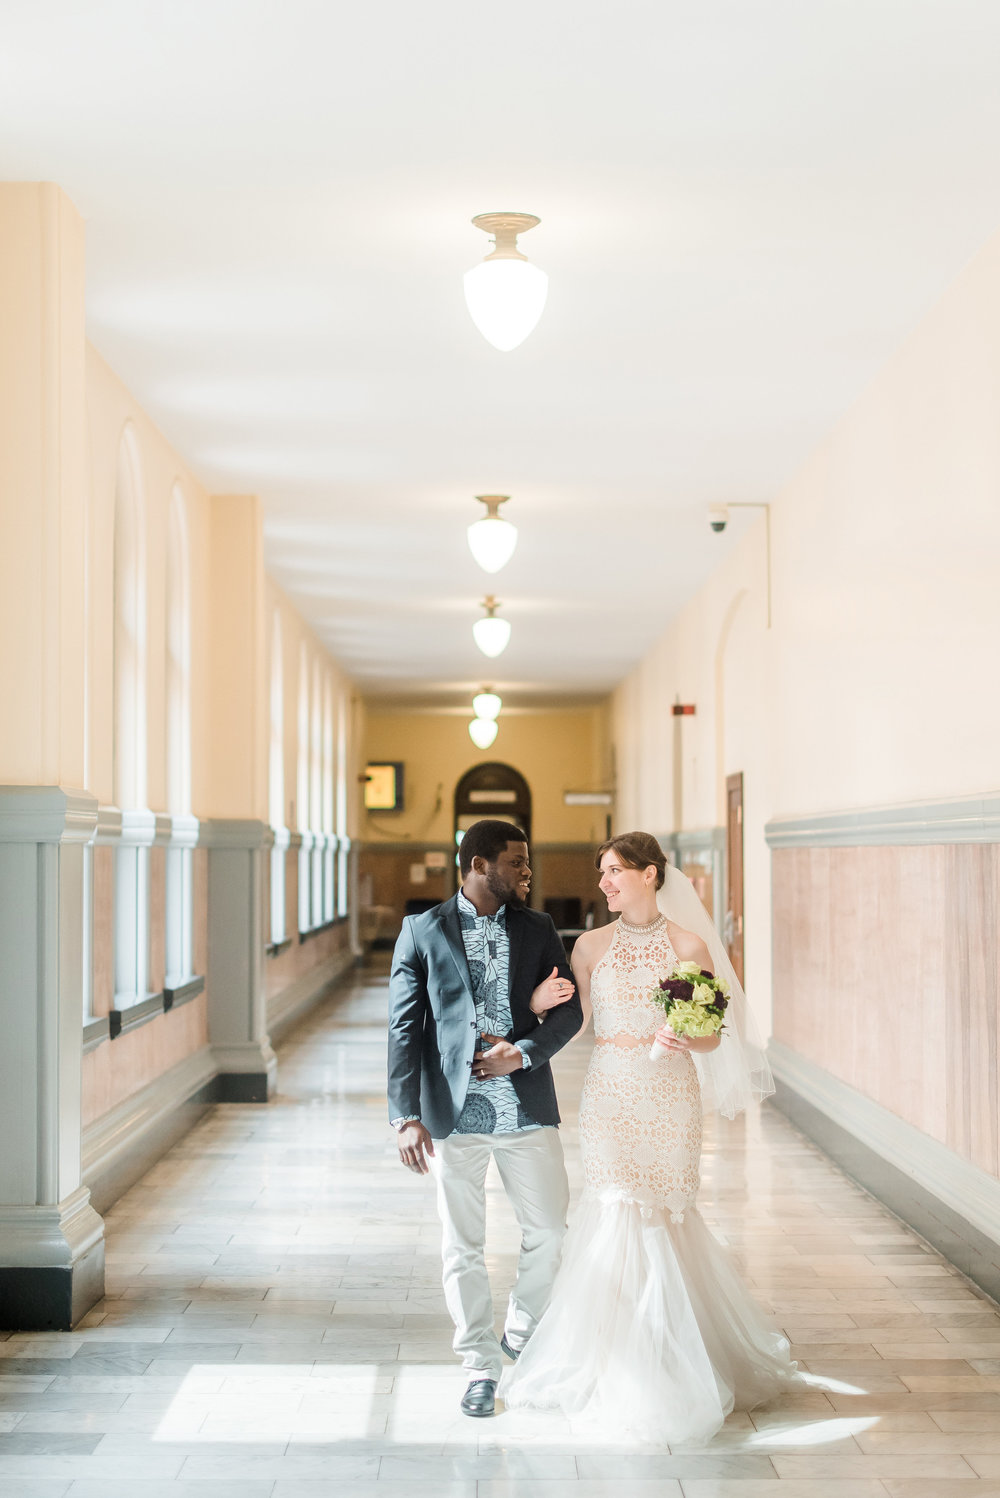 pittsburgh-wedding-photographer-elopement-courthousewedding-downtown-city0308.jpg